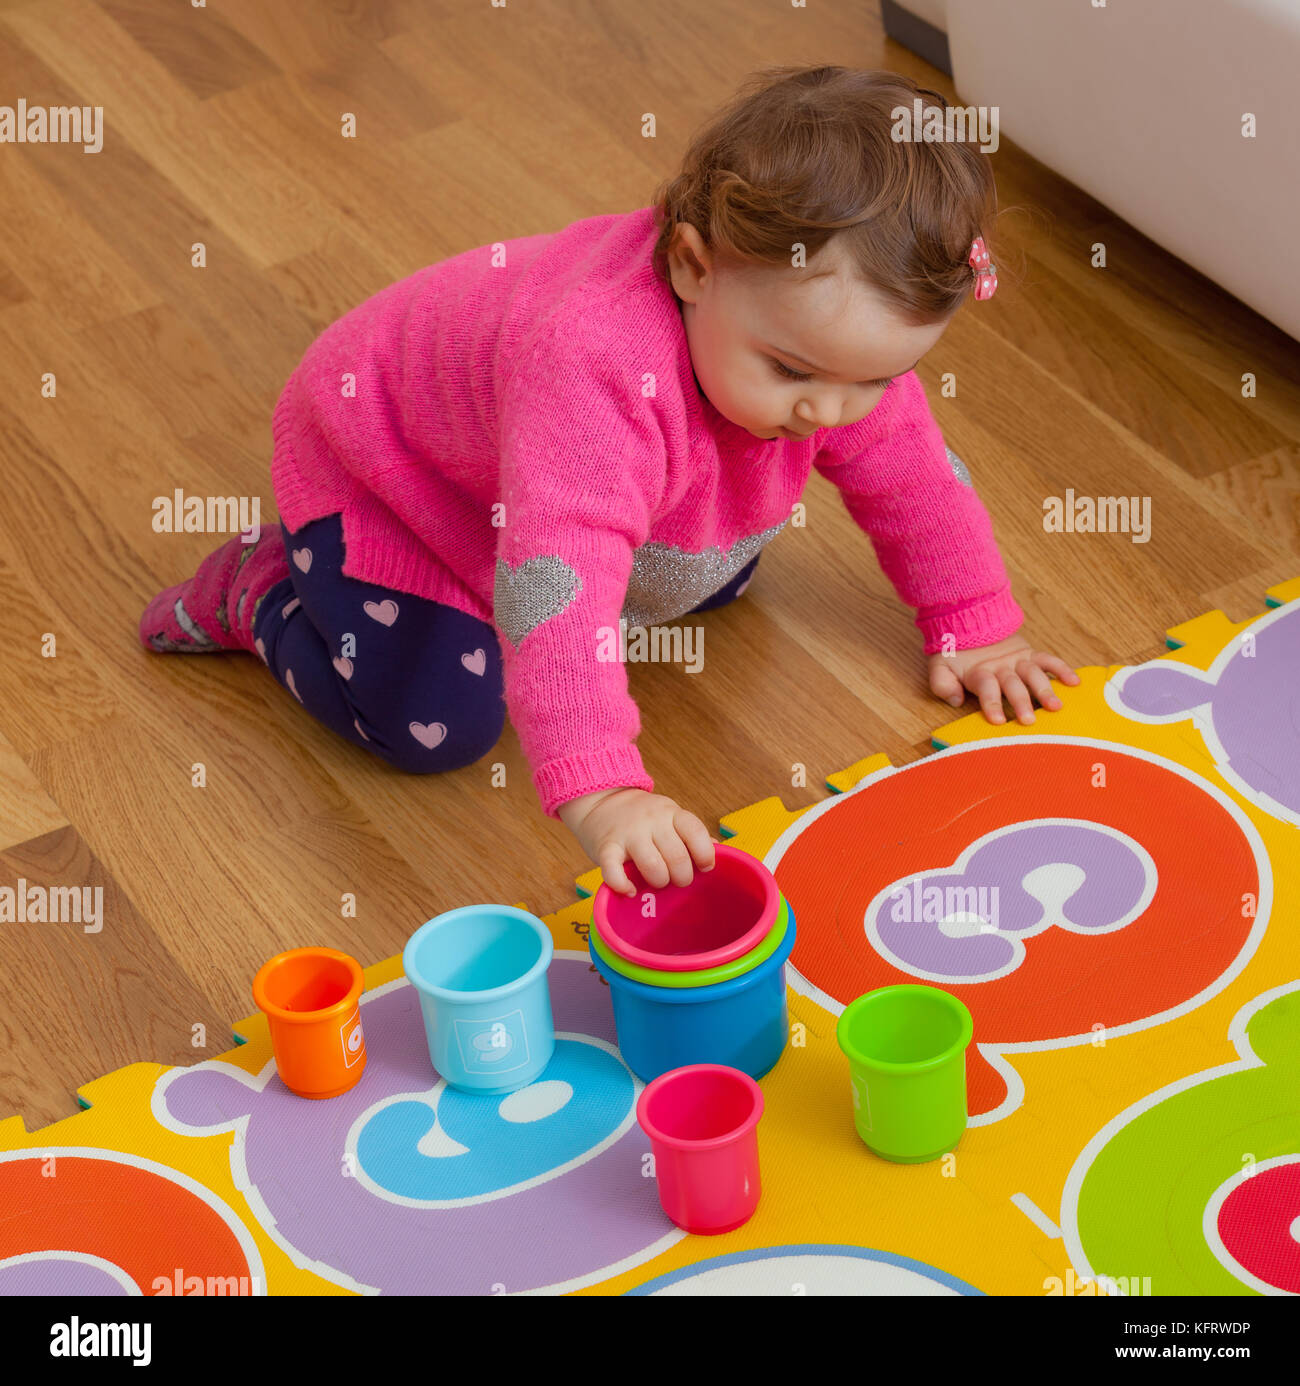 Toddler Baby Girl Plays With Colored Cups Toy For